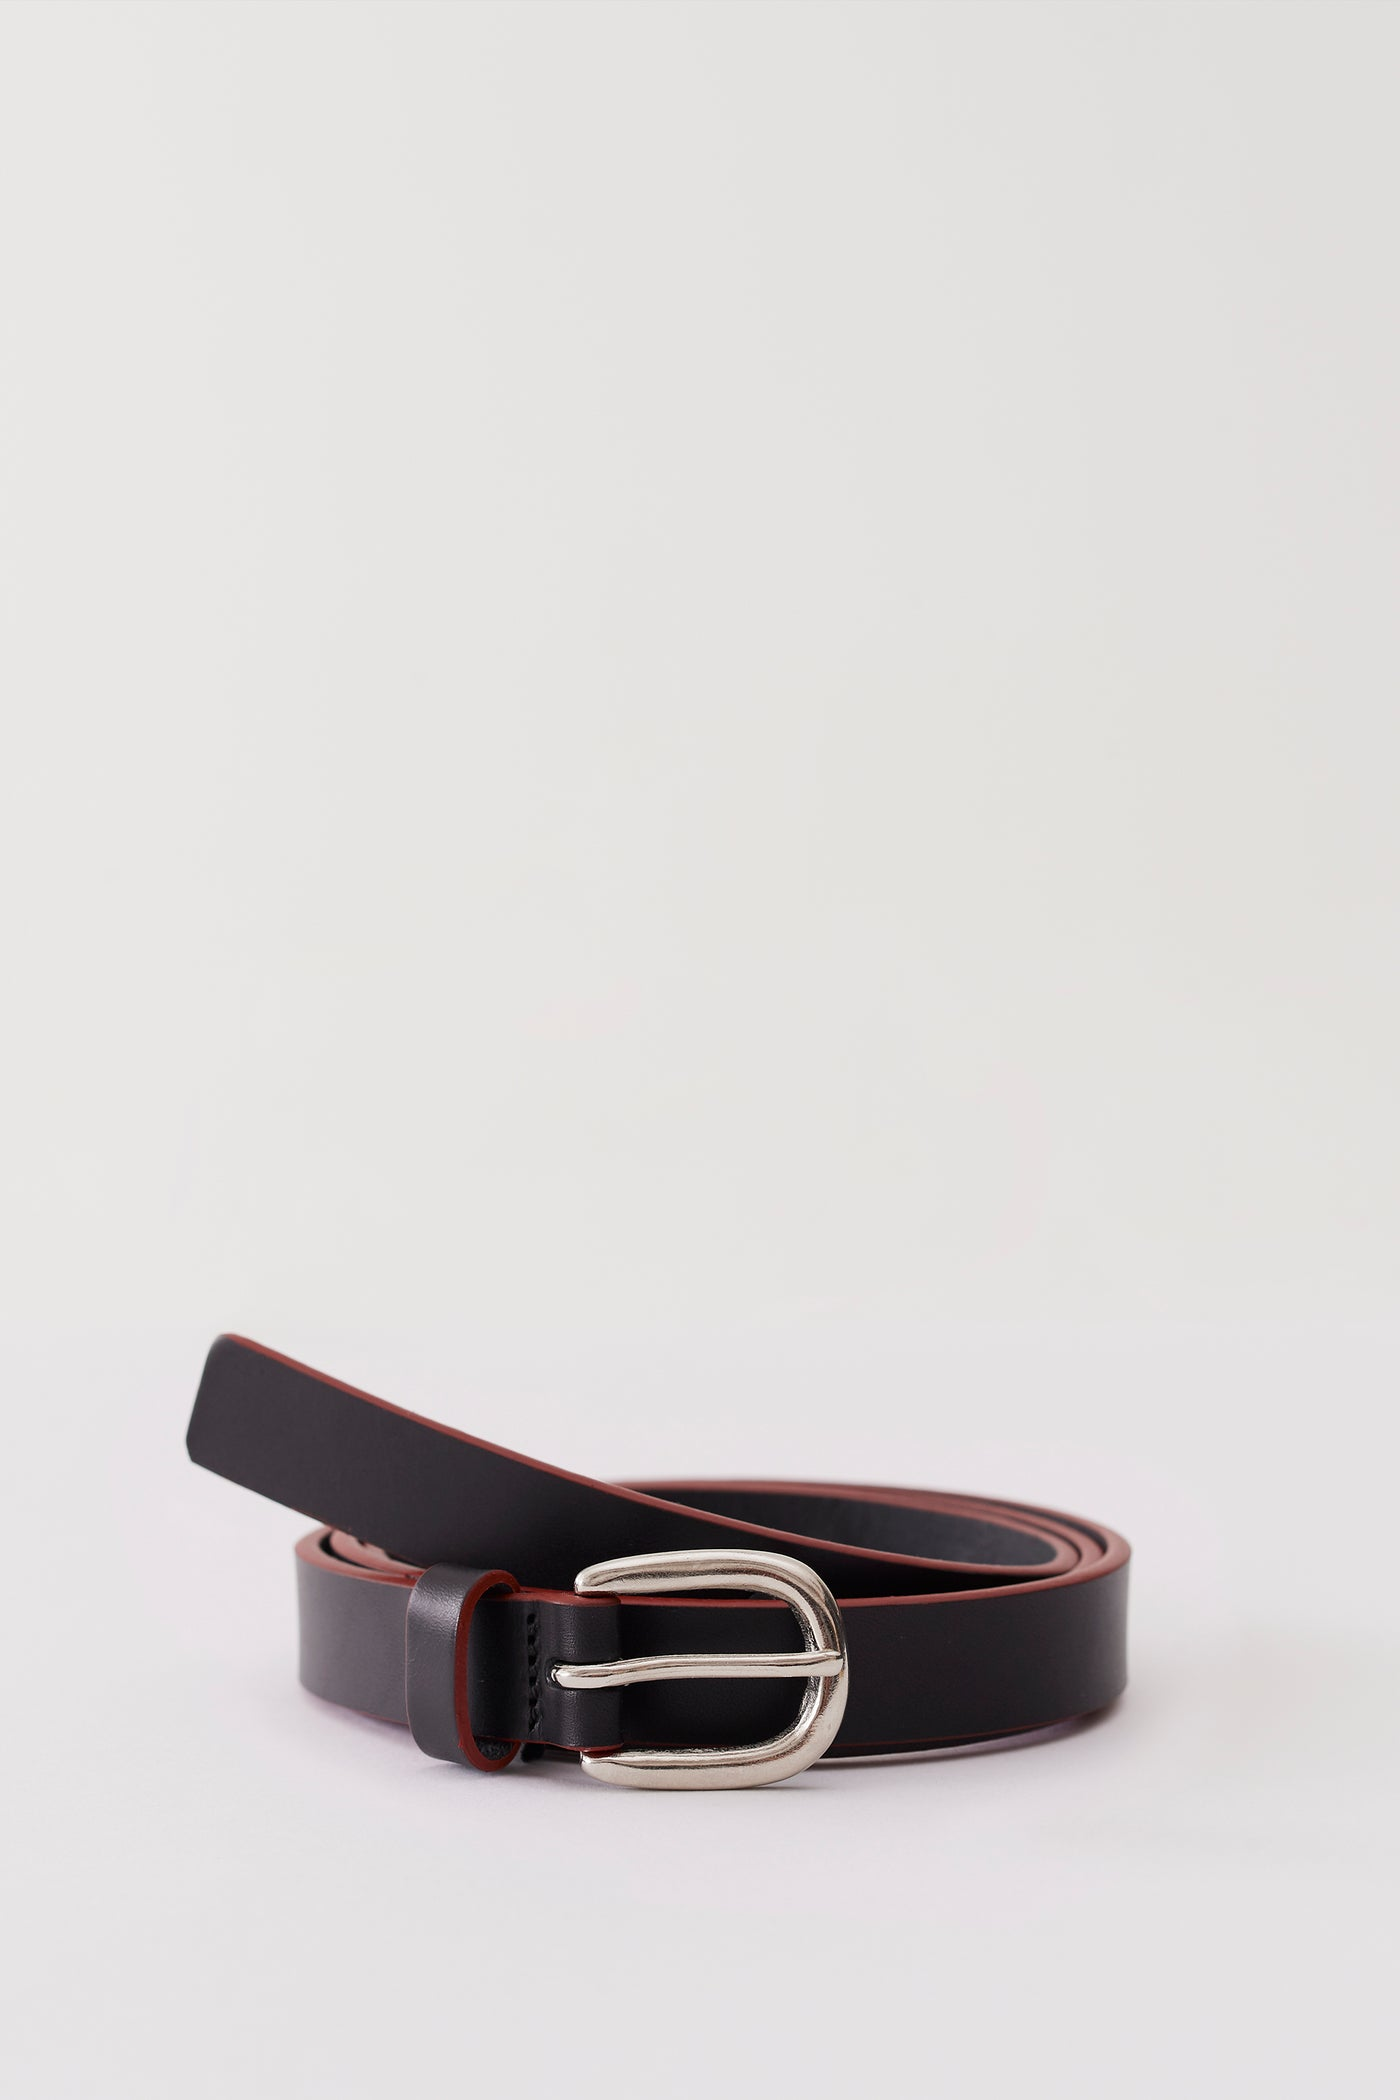 Cas Leather Belt Black Red